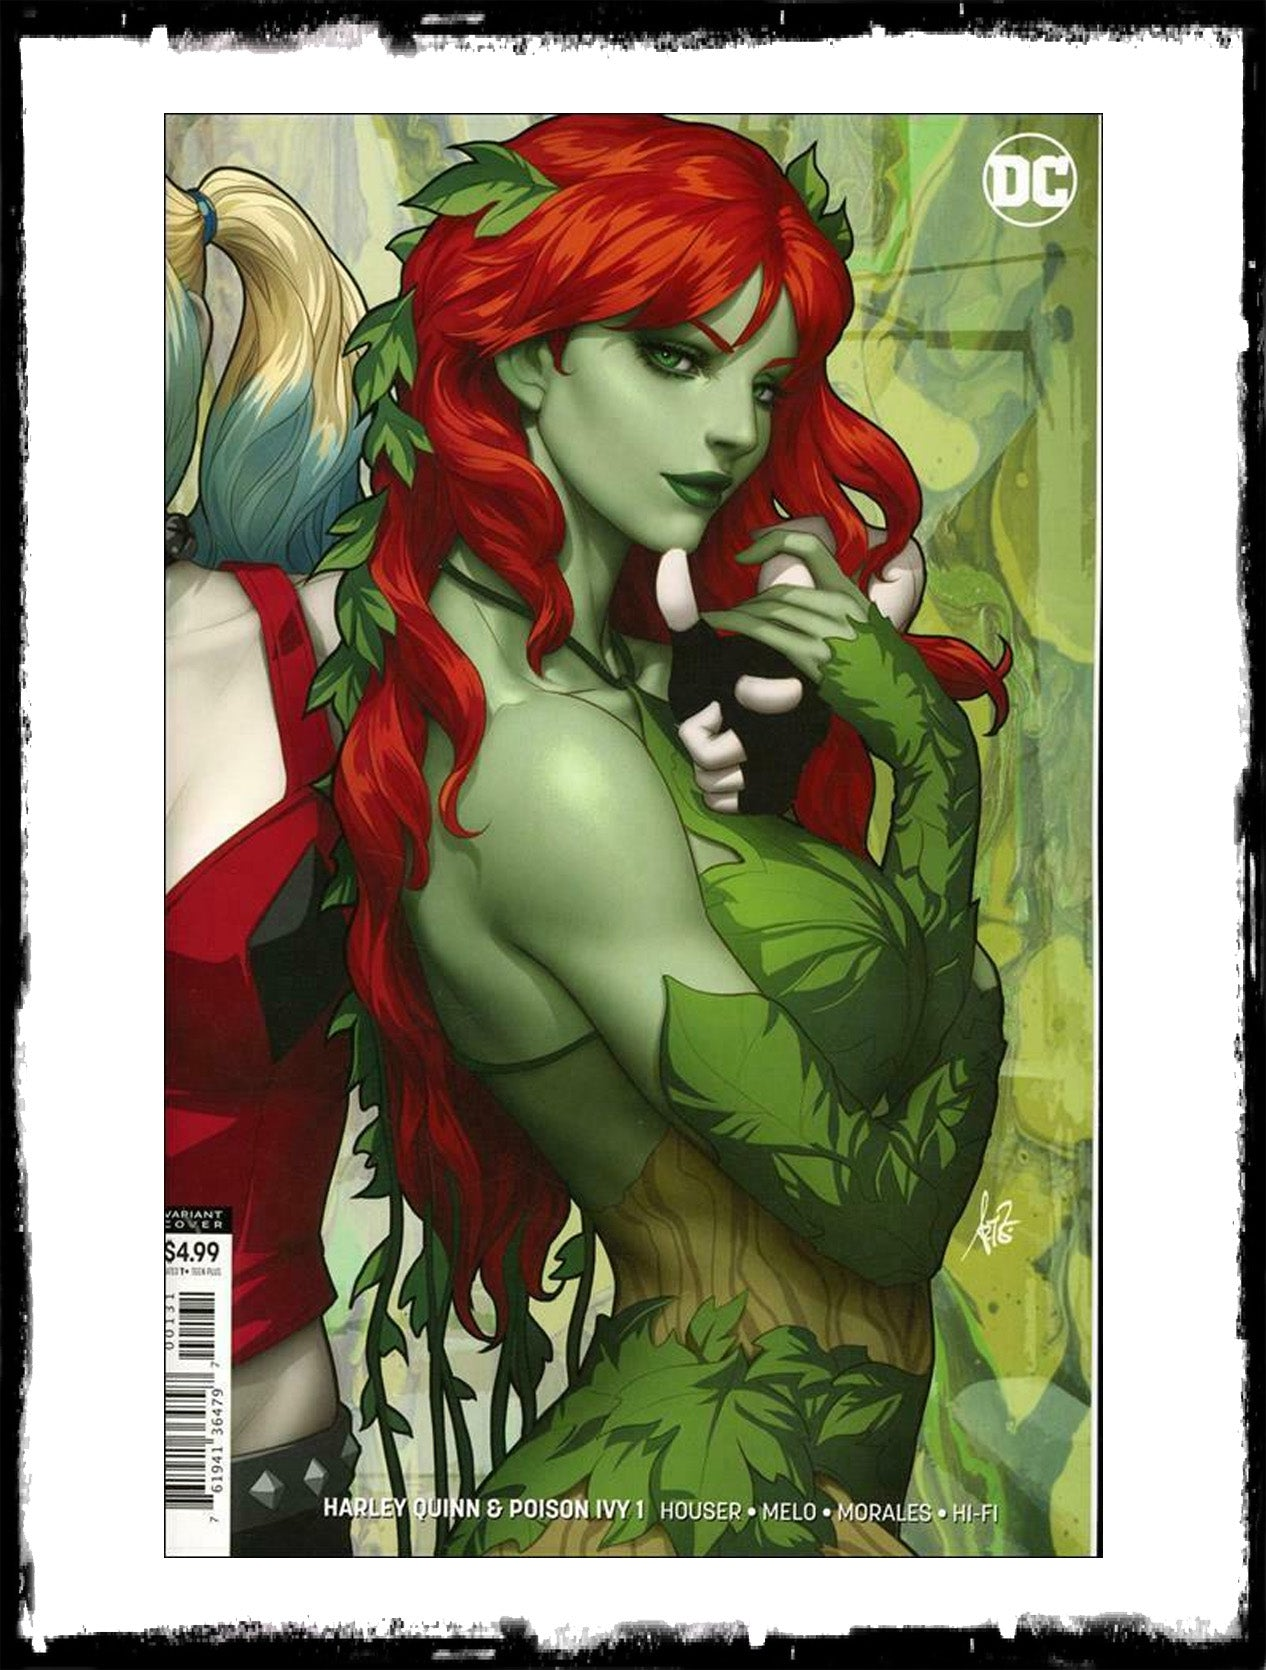 HARLEY QUINN & POISON IVY - #1 STANLEY ARTGERM IVY EXCLUSIVE VARIANT (2019 - NM)